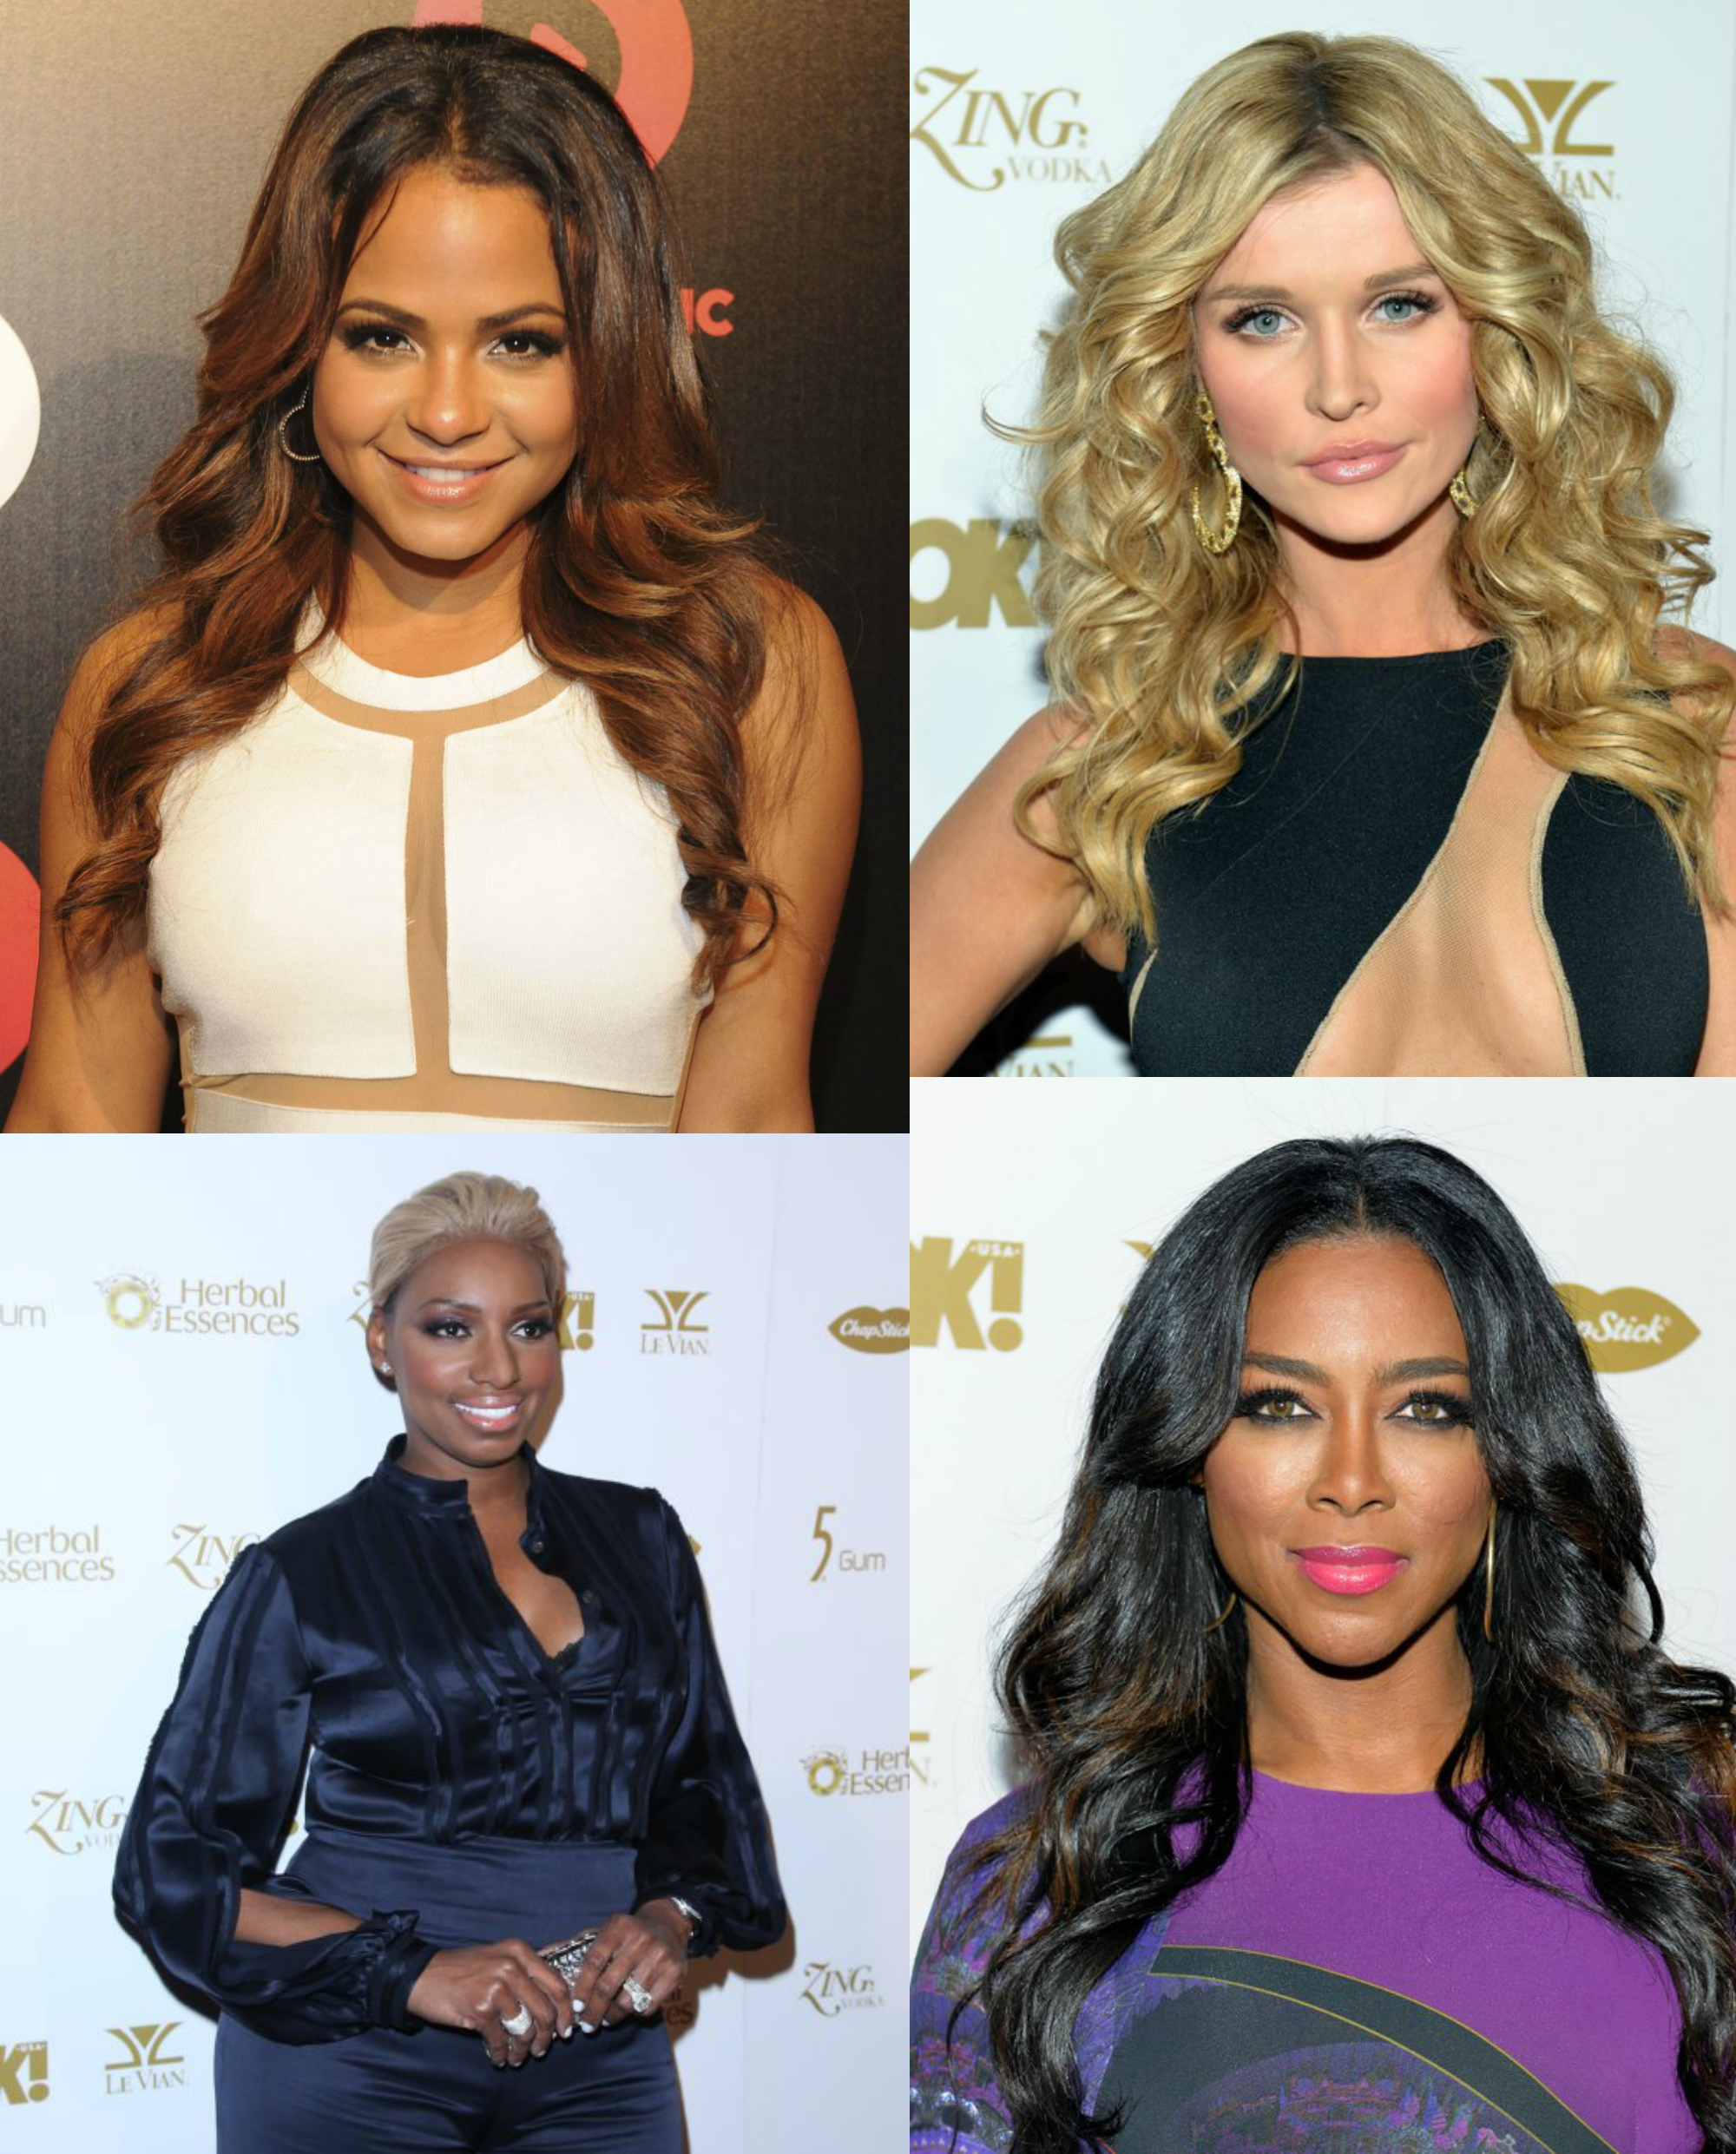 Celebs At The OK! Magazine Pre-Grammy Party